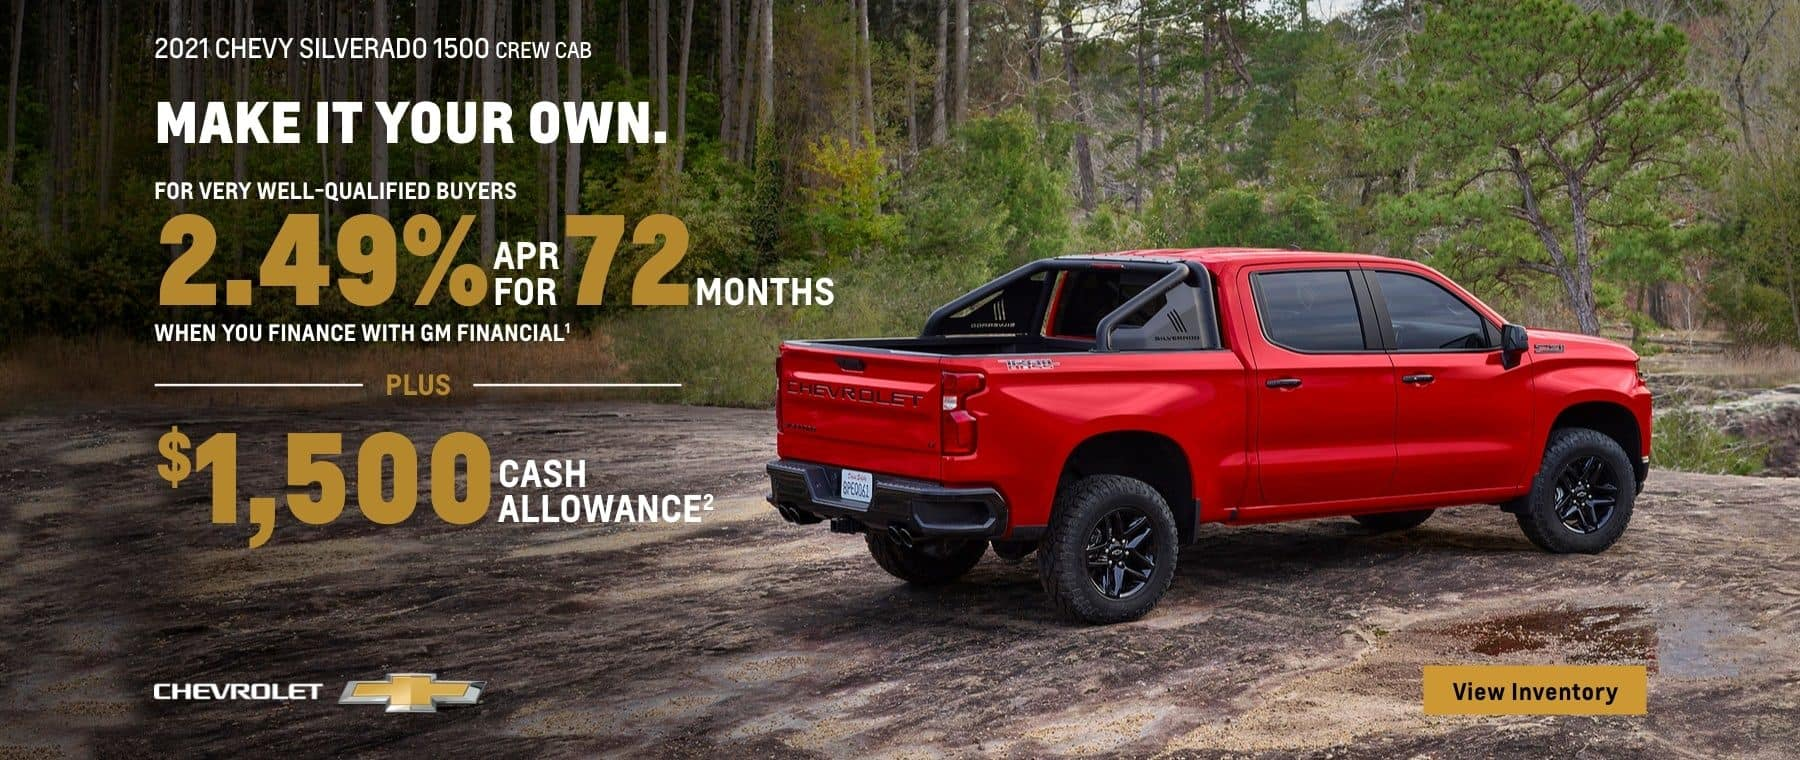 2021 Chevy Silverado 1500 Crew Cab. For very well-qualified buyers 2.49% APR for 72 months when you finance with GM Financial. Plus, $1,500 cash allowance.